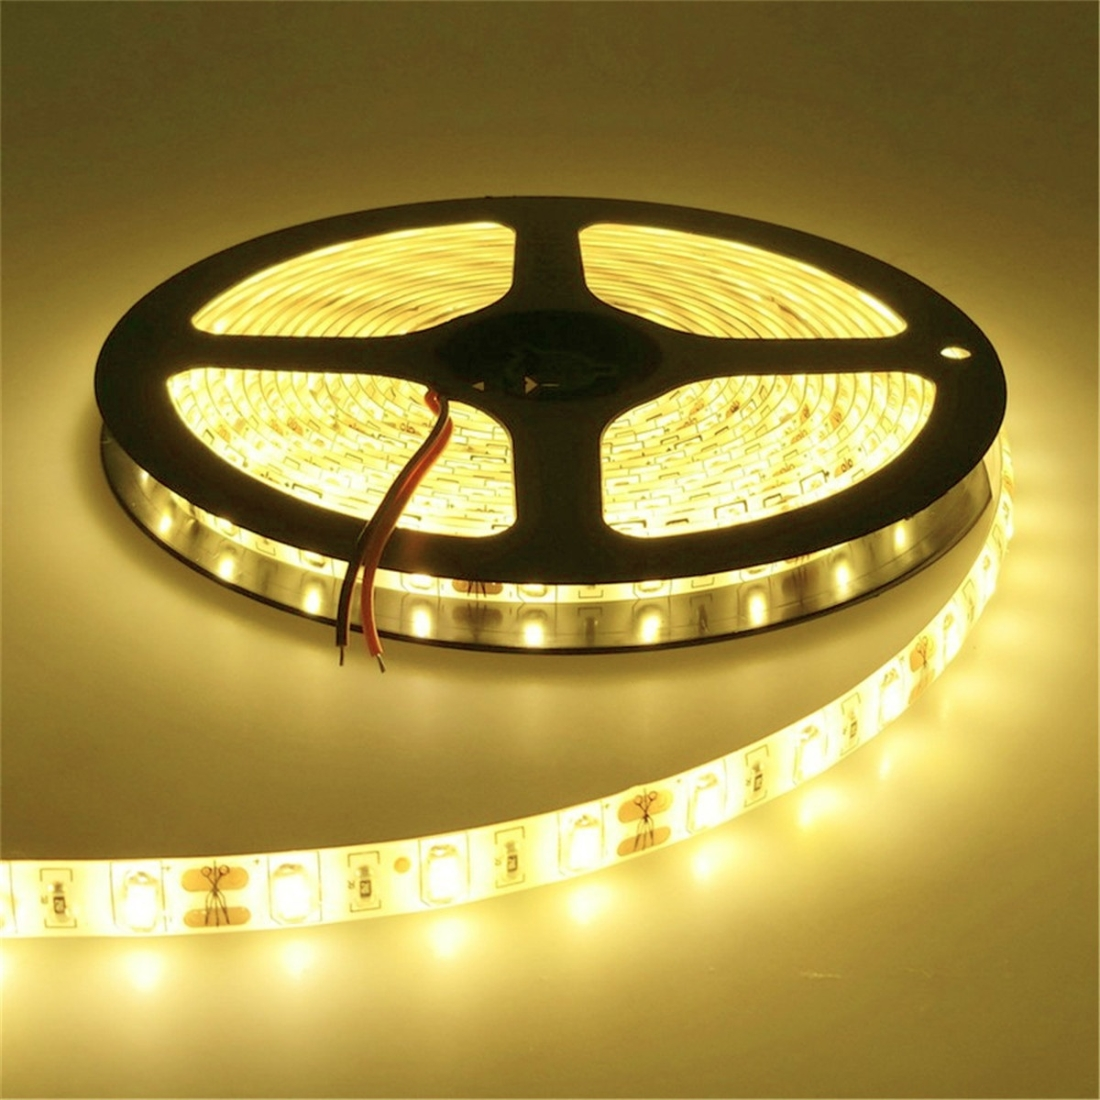 YWXLight IP20 300LEDs 5M SMD 5630 LED Strip Flexible LED Ribbon For Home Decoration DC 12V (Warm White)